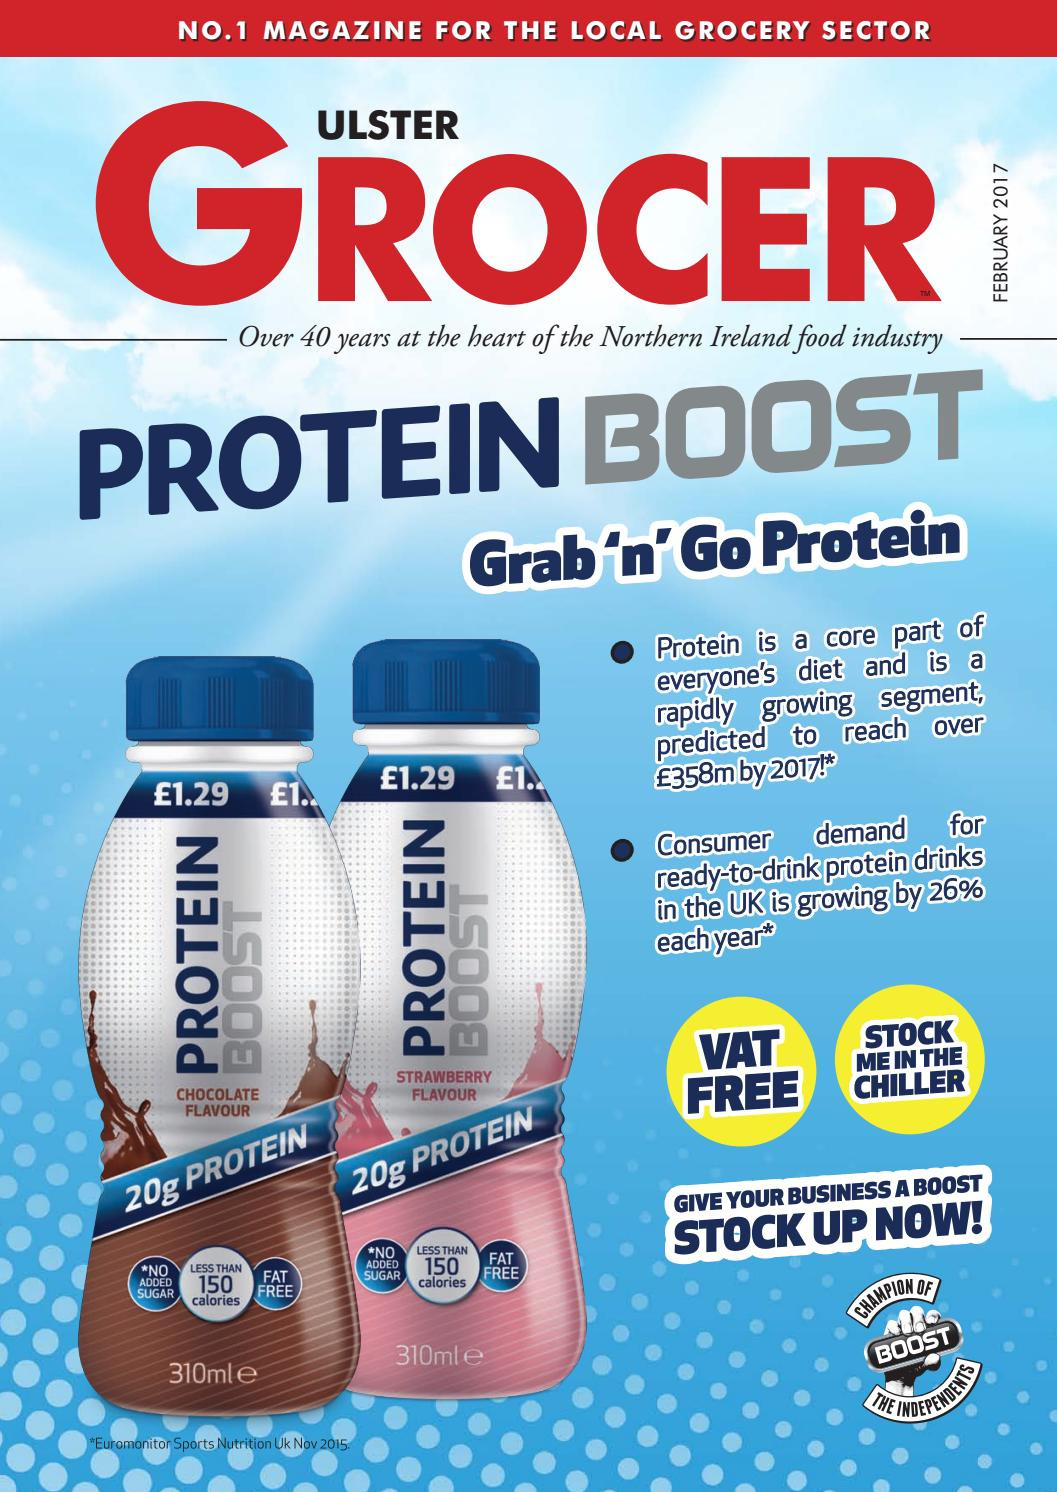 Ulster Grocer Feb 2017 by Helen Wright - issuu